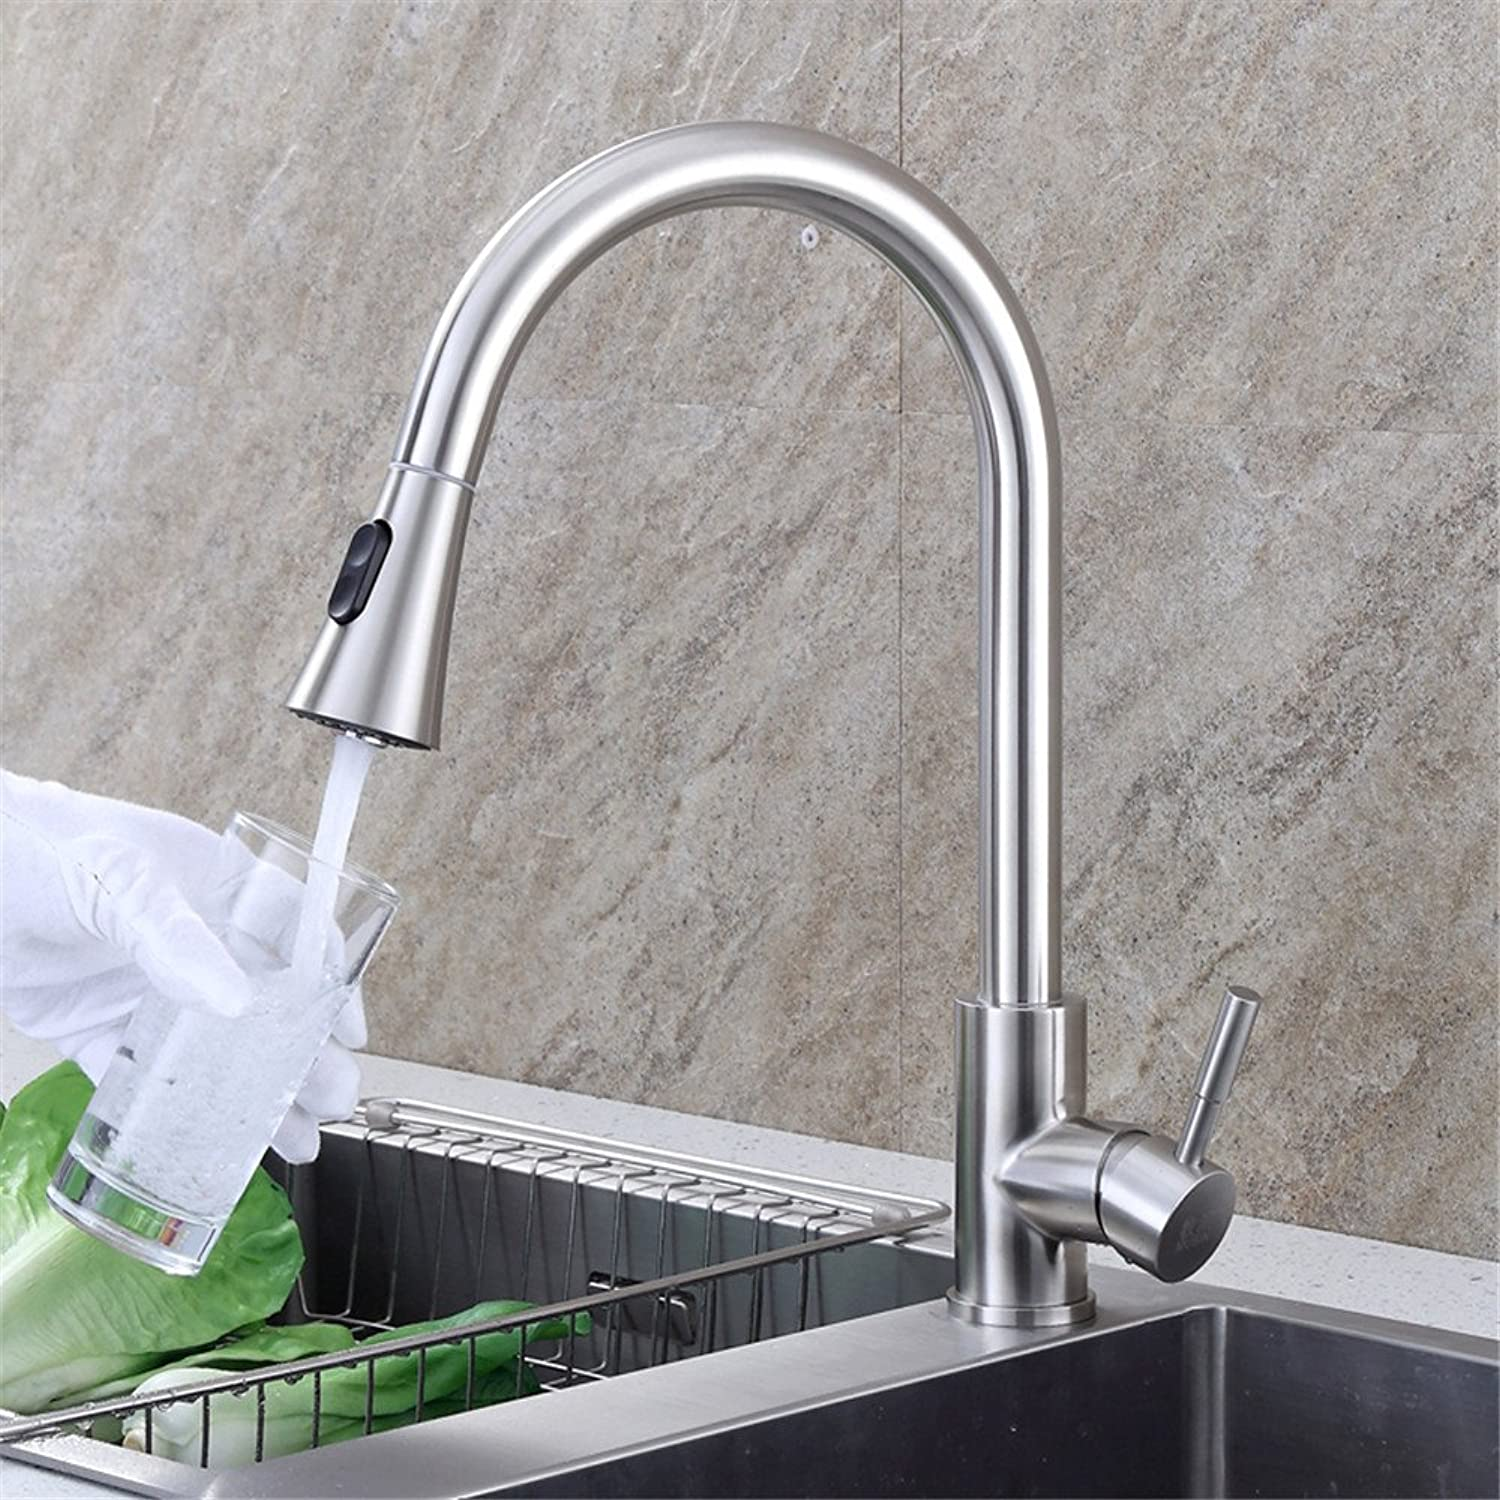 AOLOR Basin Pull Type 304 Stainless Steel hot and Cold Expansion Modern Taps Kitchen Brass Faucet Bathroom Sink Waterfall Tap Mixer Water Washroom Bath Tub Shower